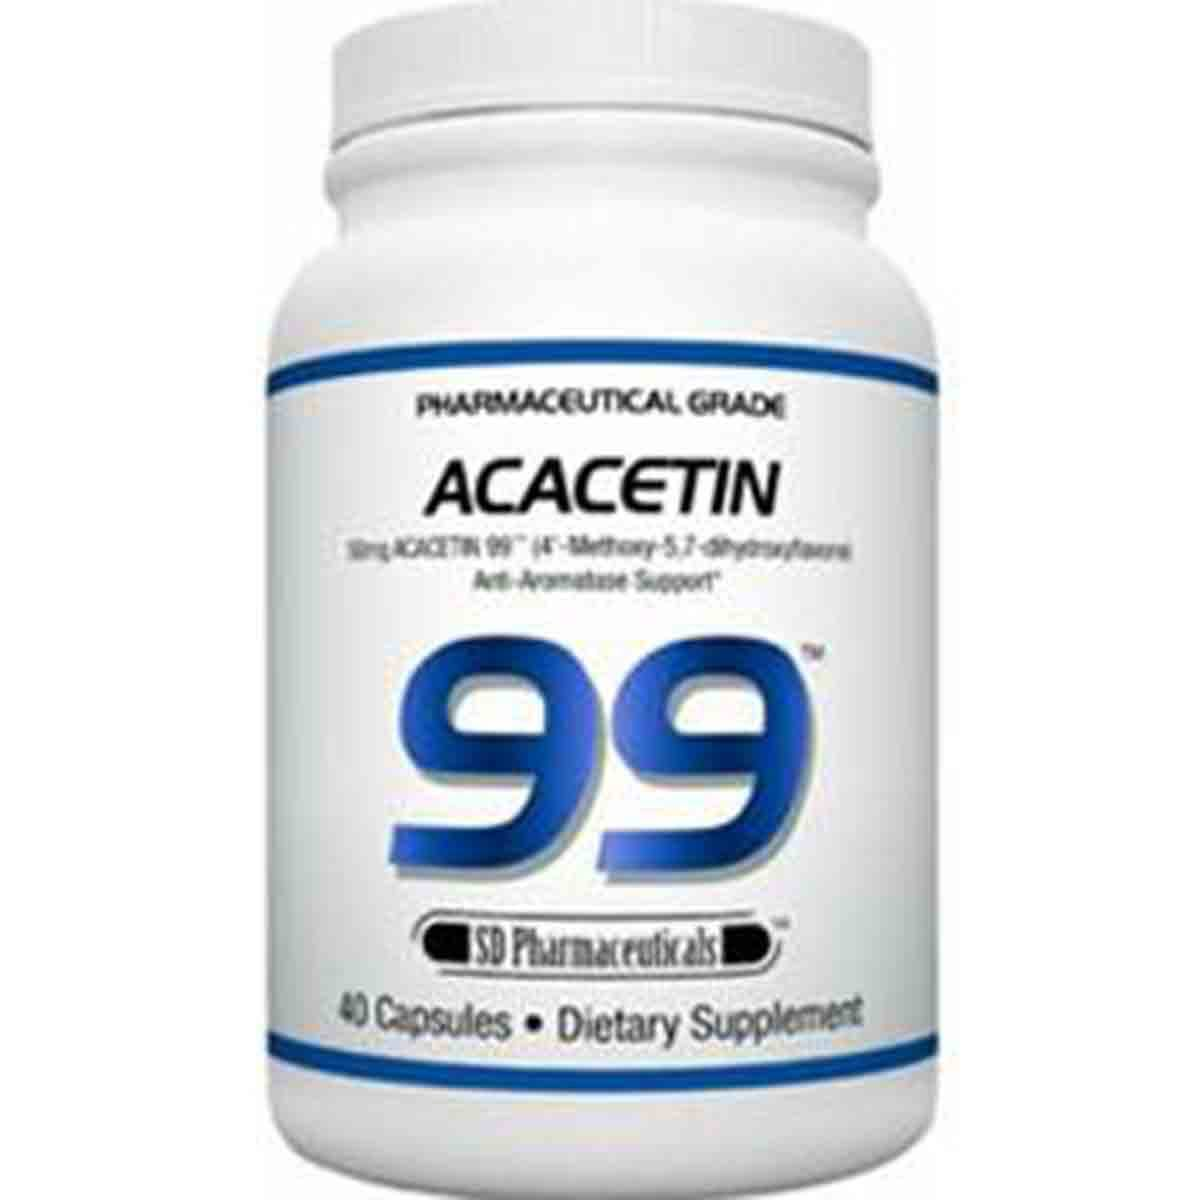 SD Pharmaceuticals Acacetin 99